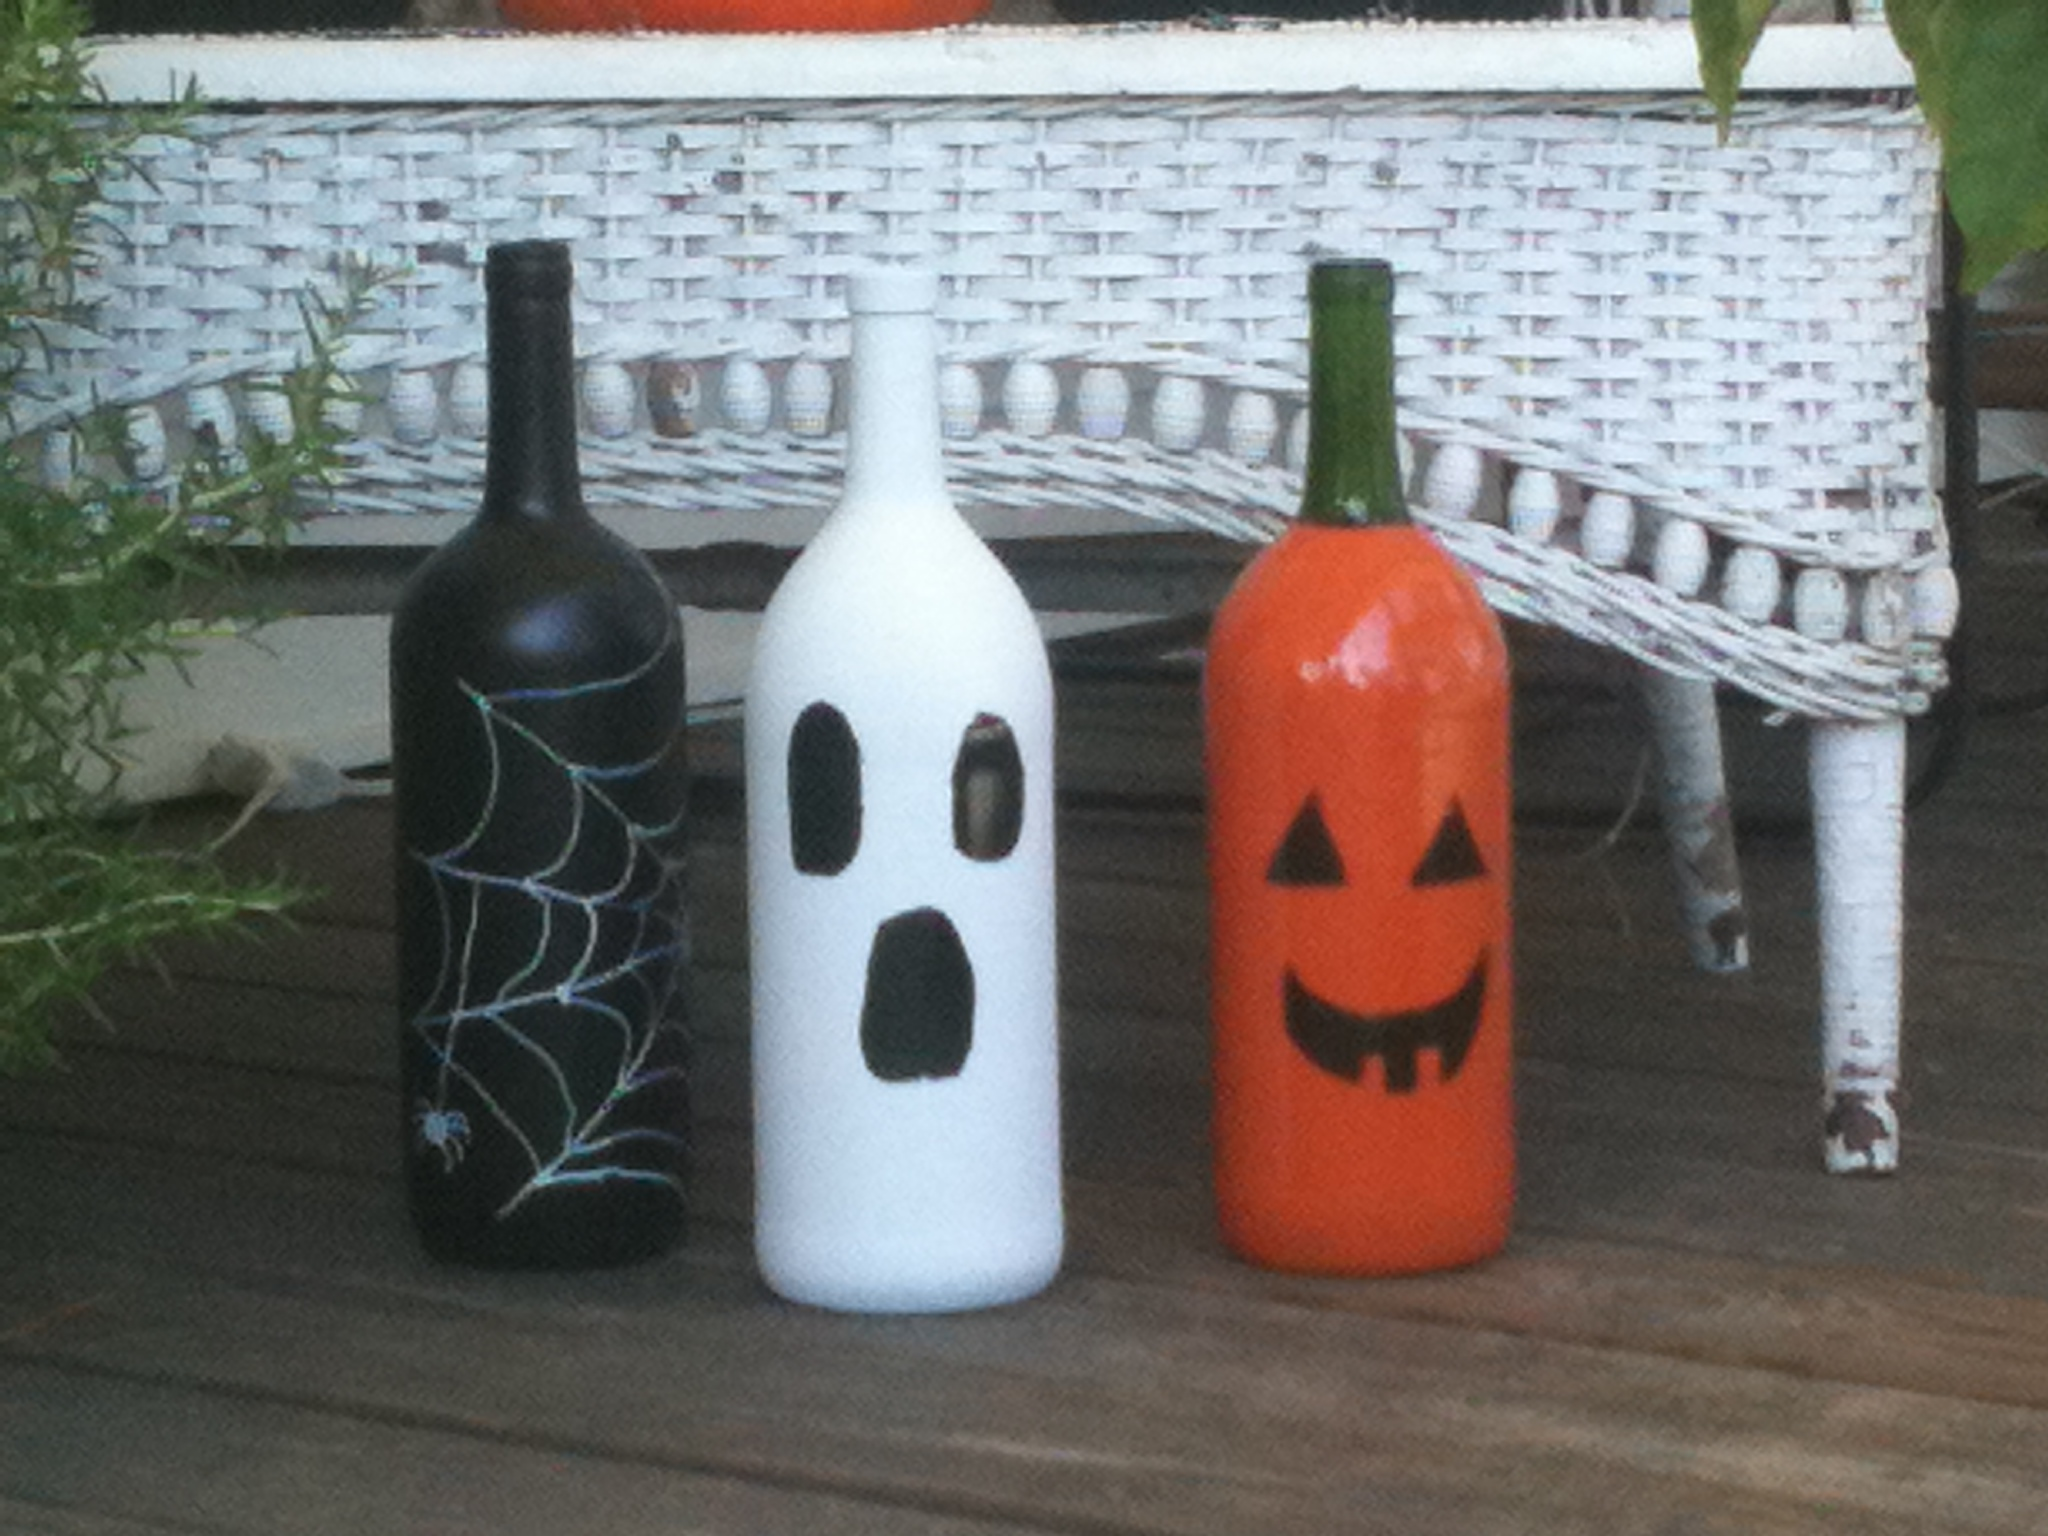 DIY Halloween Decorations | View from our front porch swing